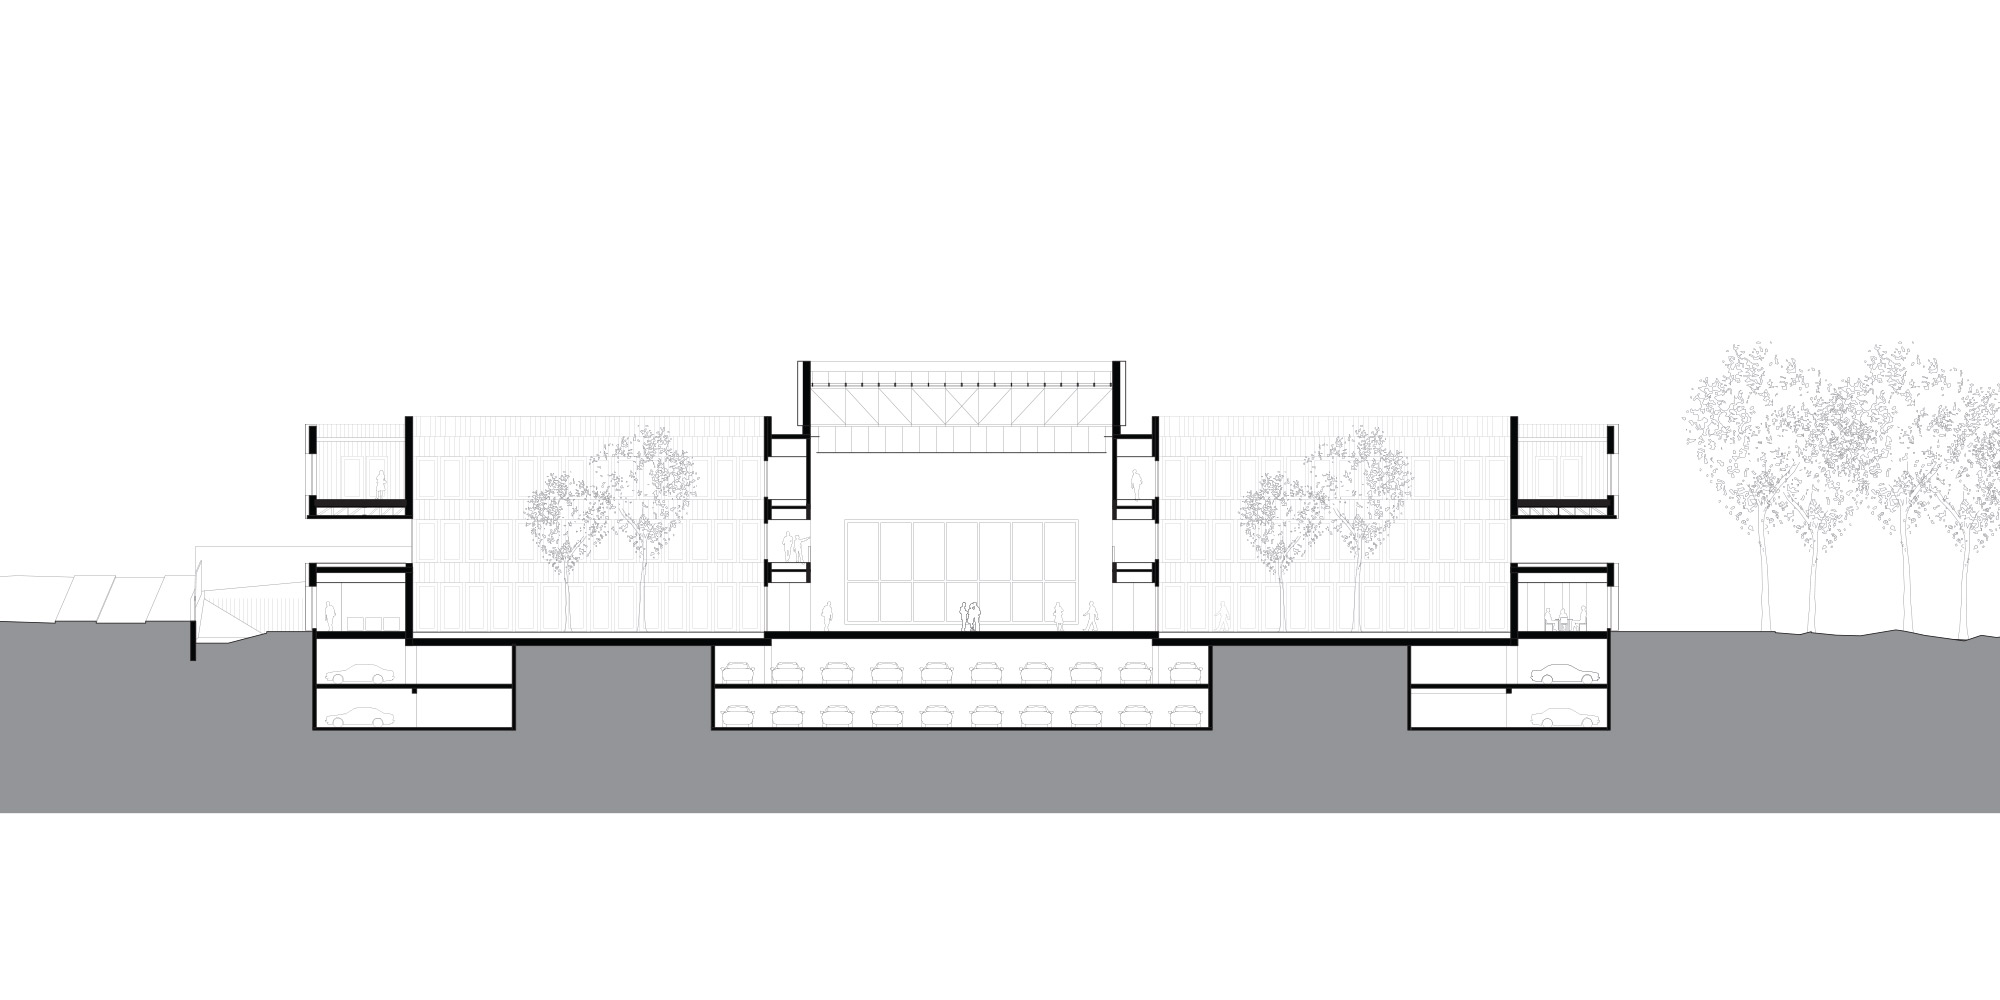 Sezione DD © KAAN Architecten and PDAA